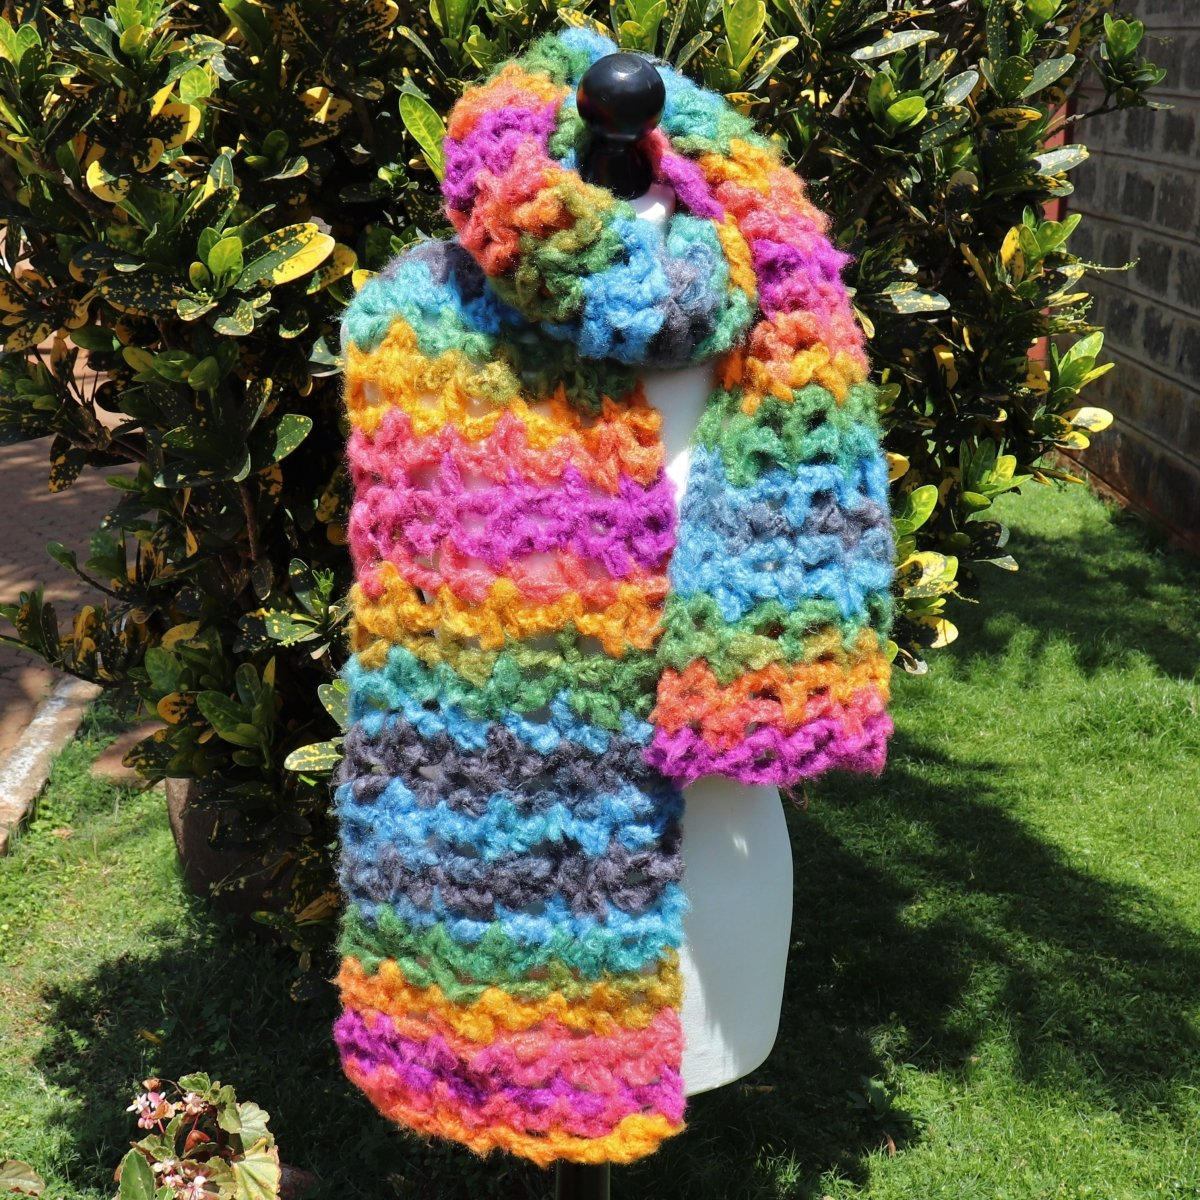 Easy Bulky Yarn Cakes Fluffy Rainbow Scarf - secretyarnery